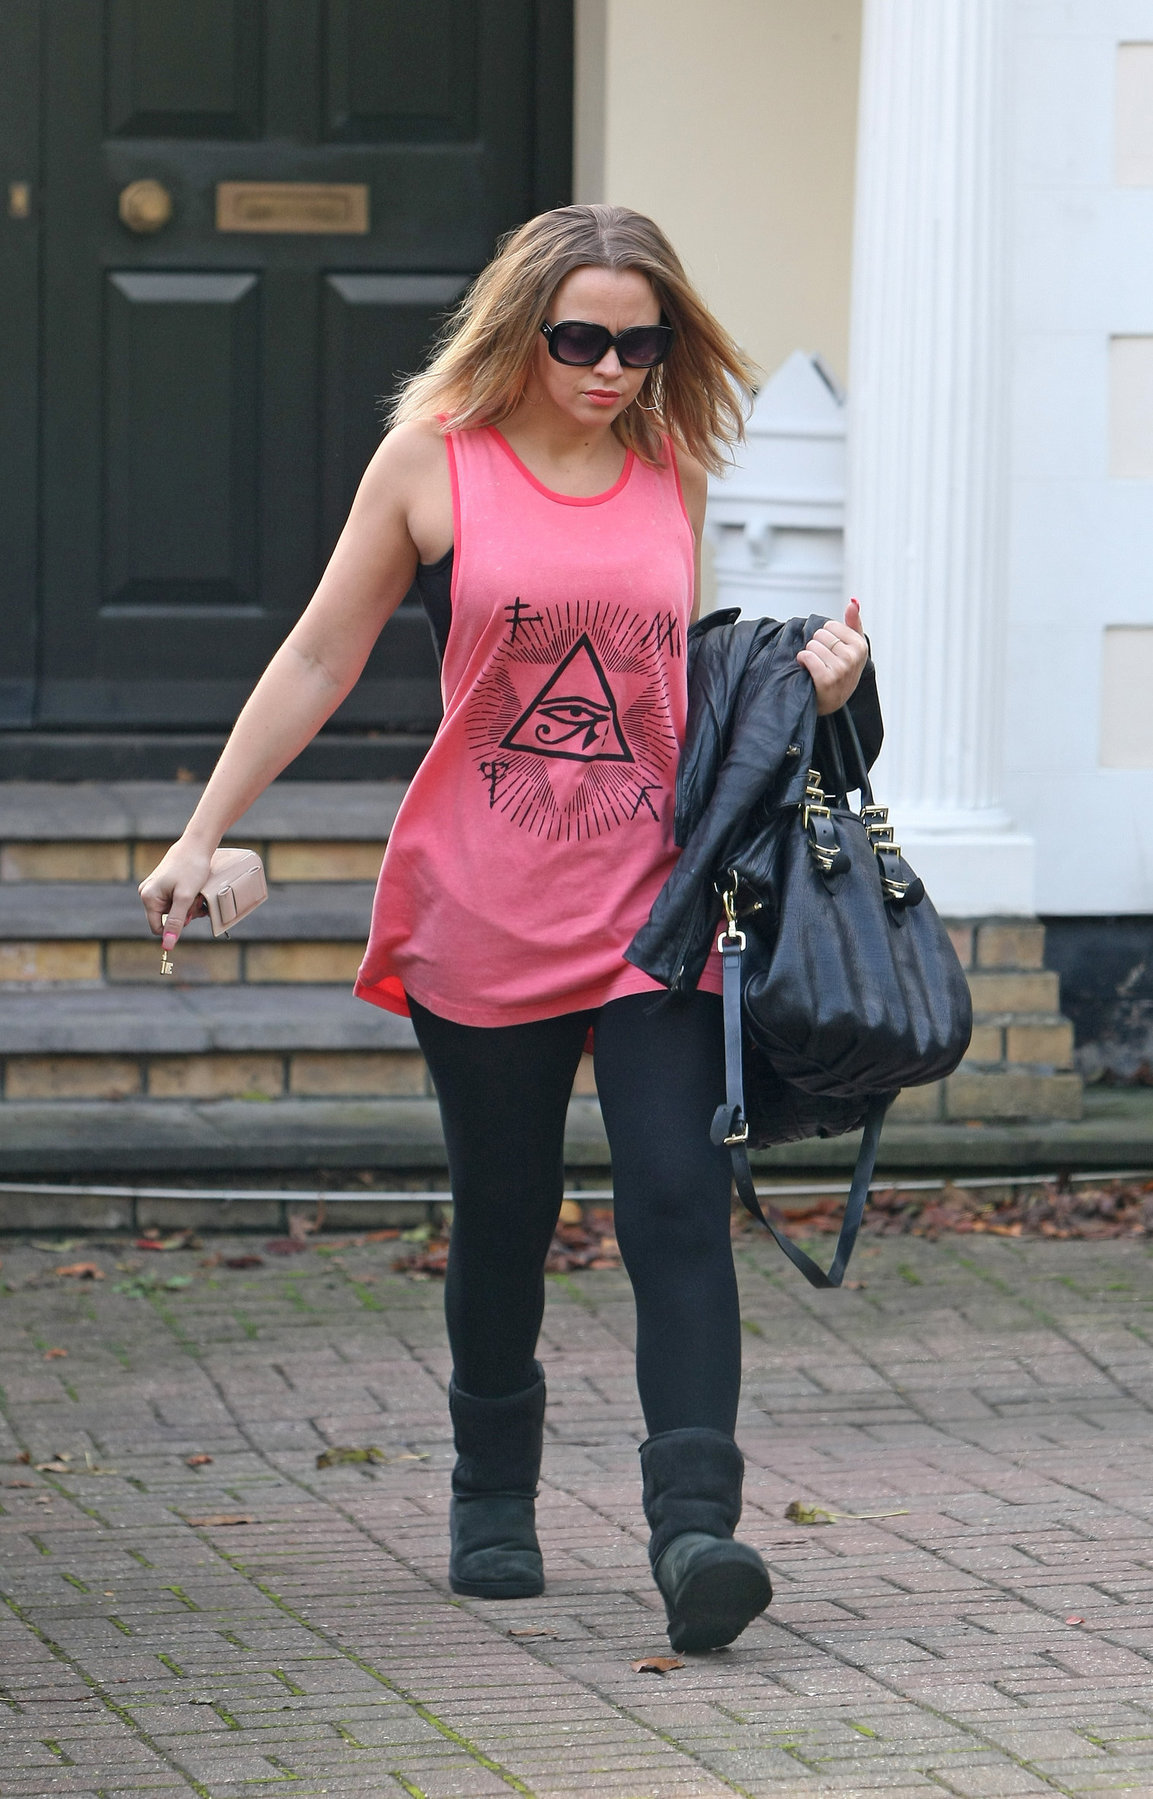 Kimberley Walsh Leaving her london home - October 9, 2012